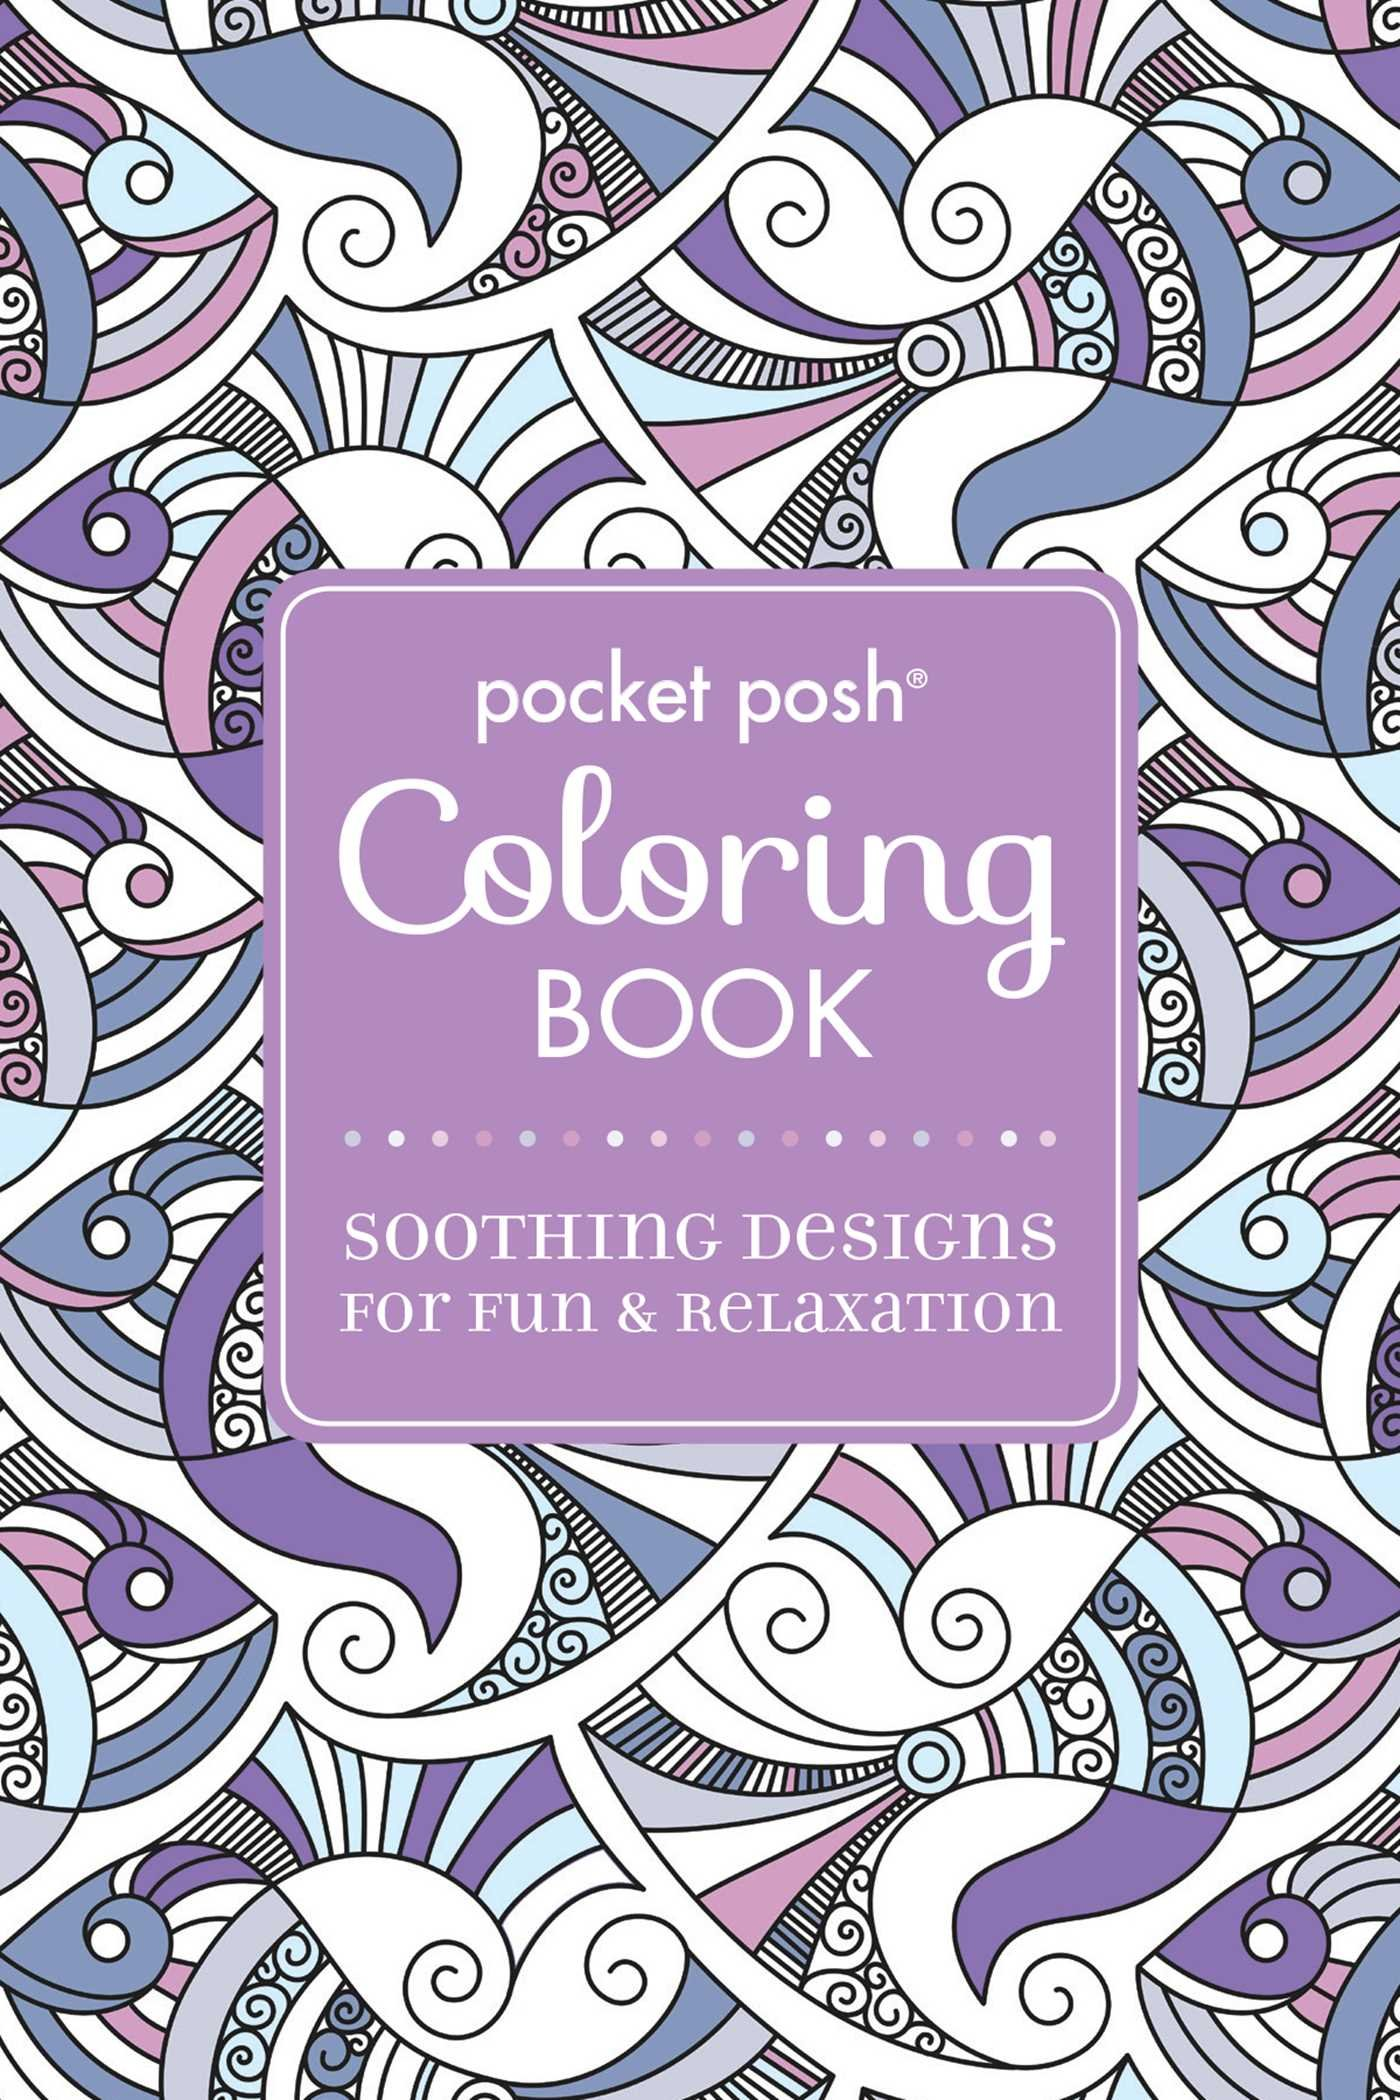 Amazon Pocket Posh Adult Coloring Book Soothing Designs For Fun Relaxation Books 0050837357419 Andrews McMeel Publishing